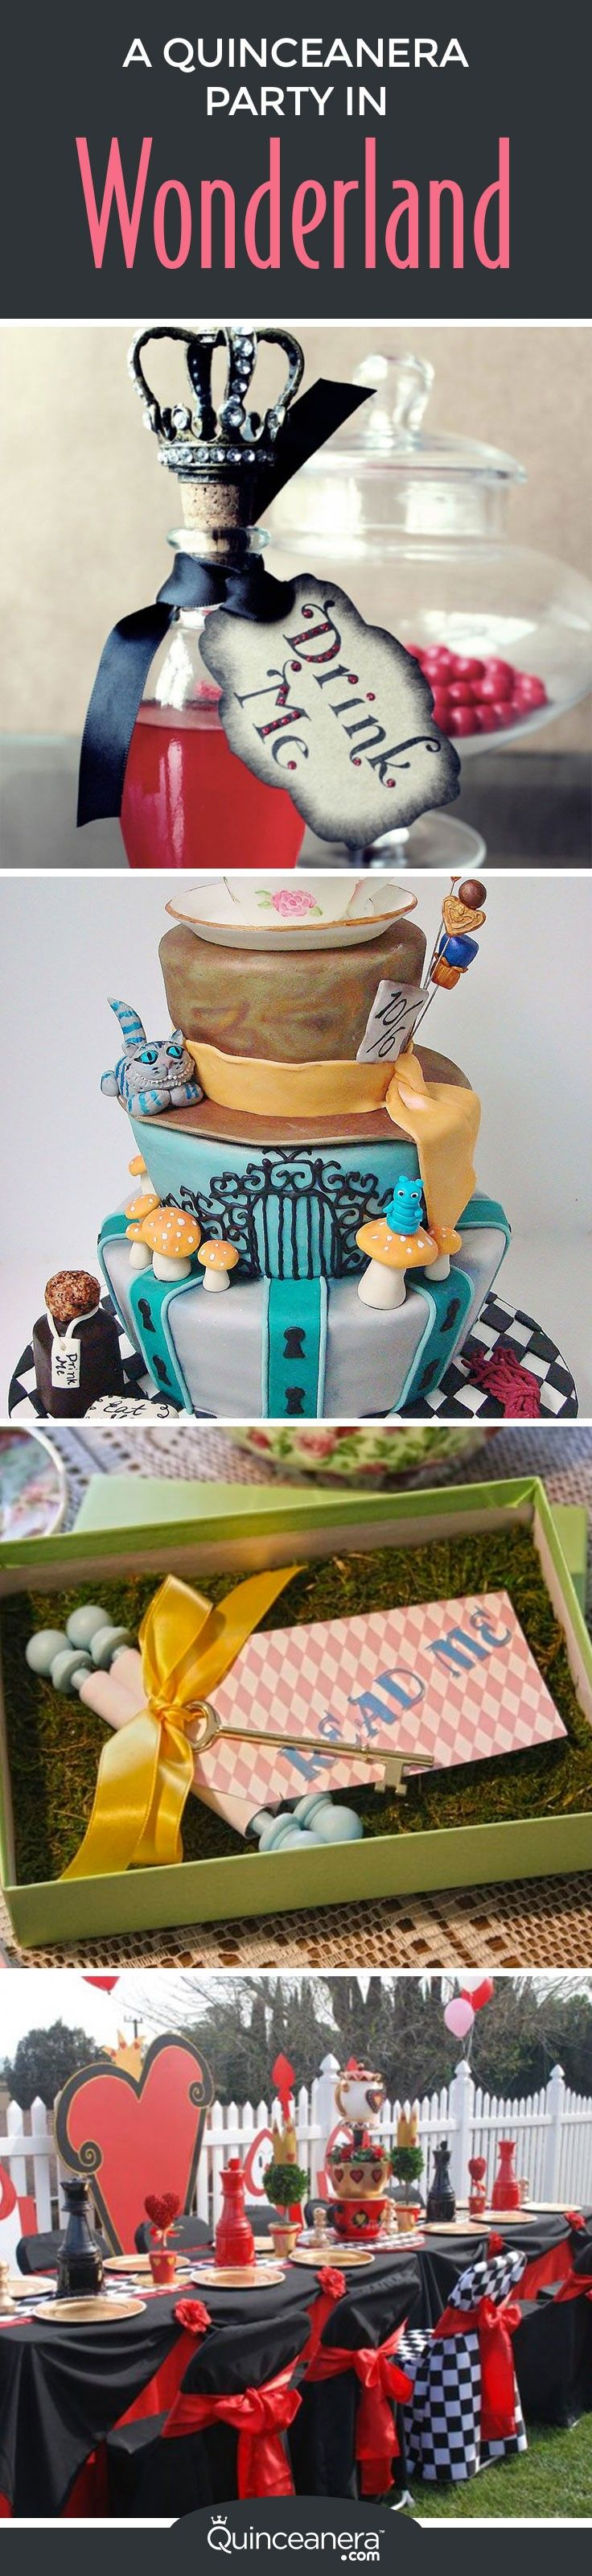 An enchanted wonderland quince theme like Alice in Wonderland is sure to dazzle your guests with it's originality!